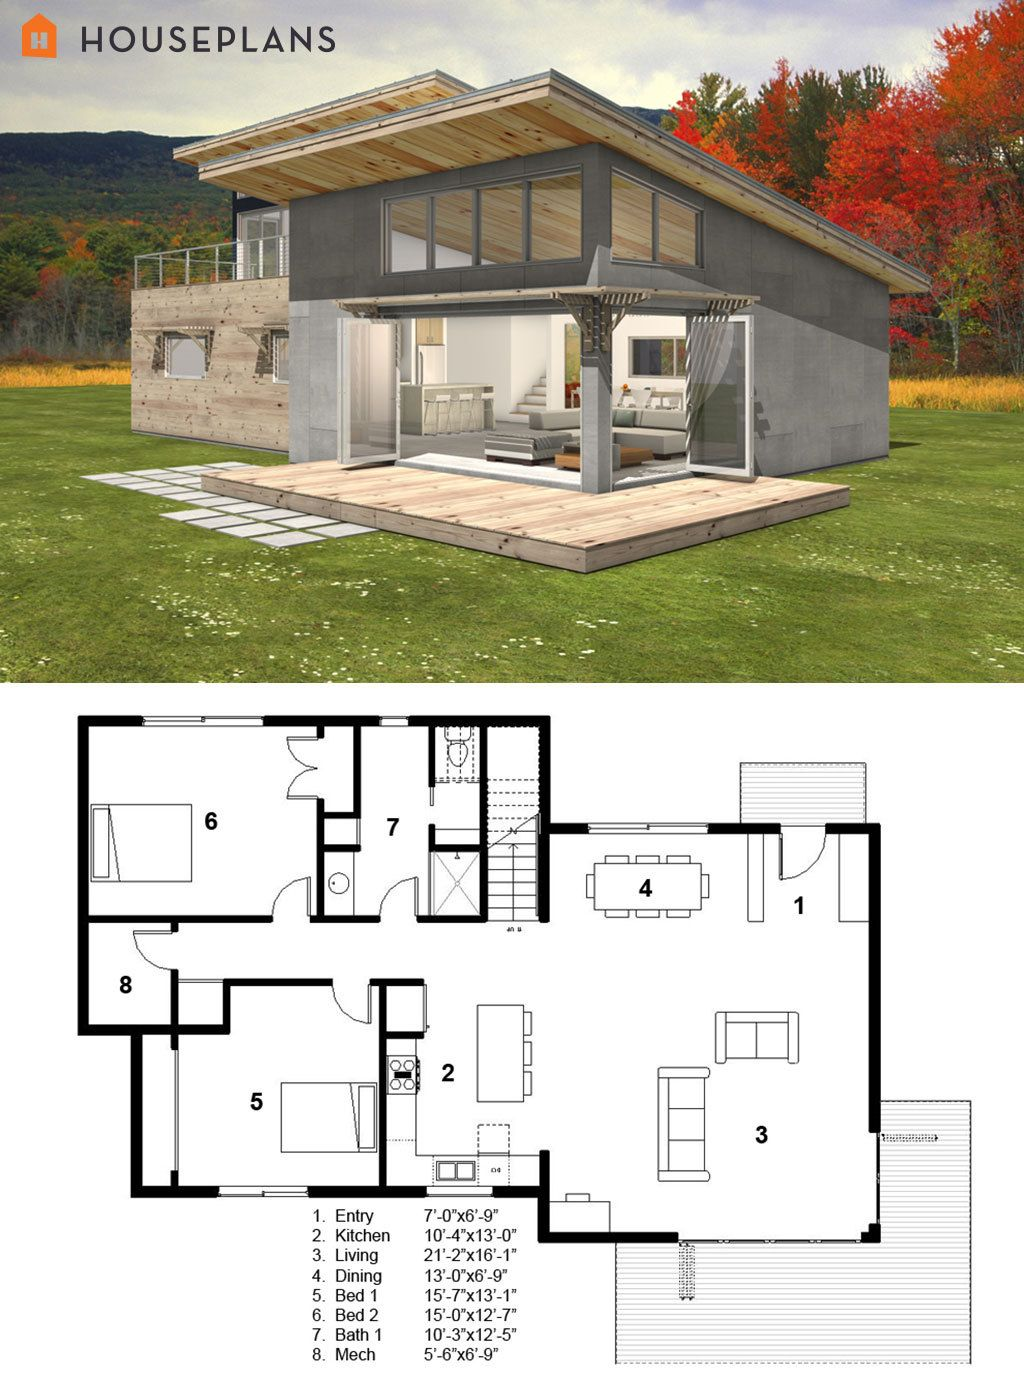 Small modern cabin house plan by freegreen energy for Small energy efficient house plans